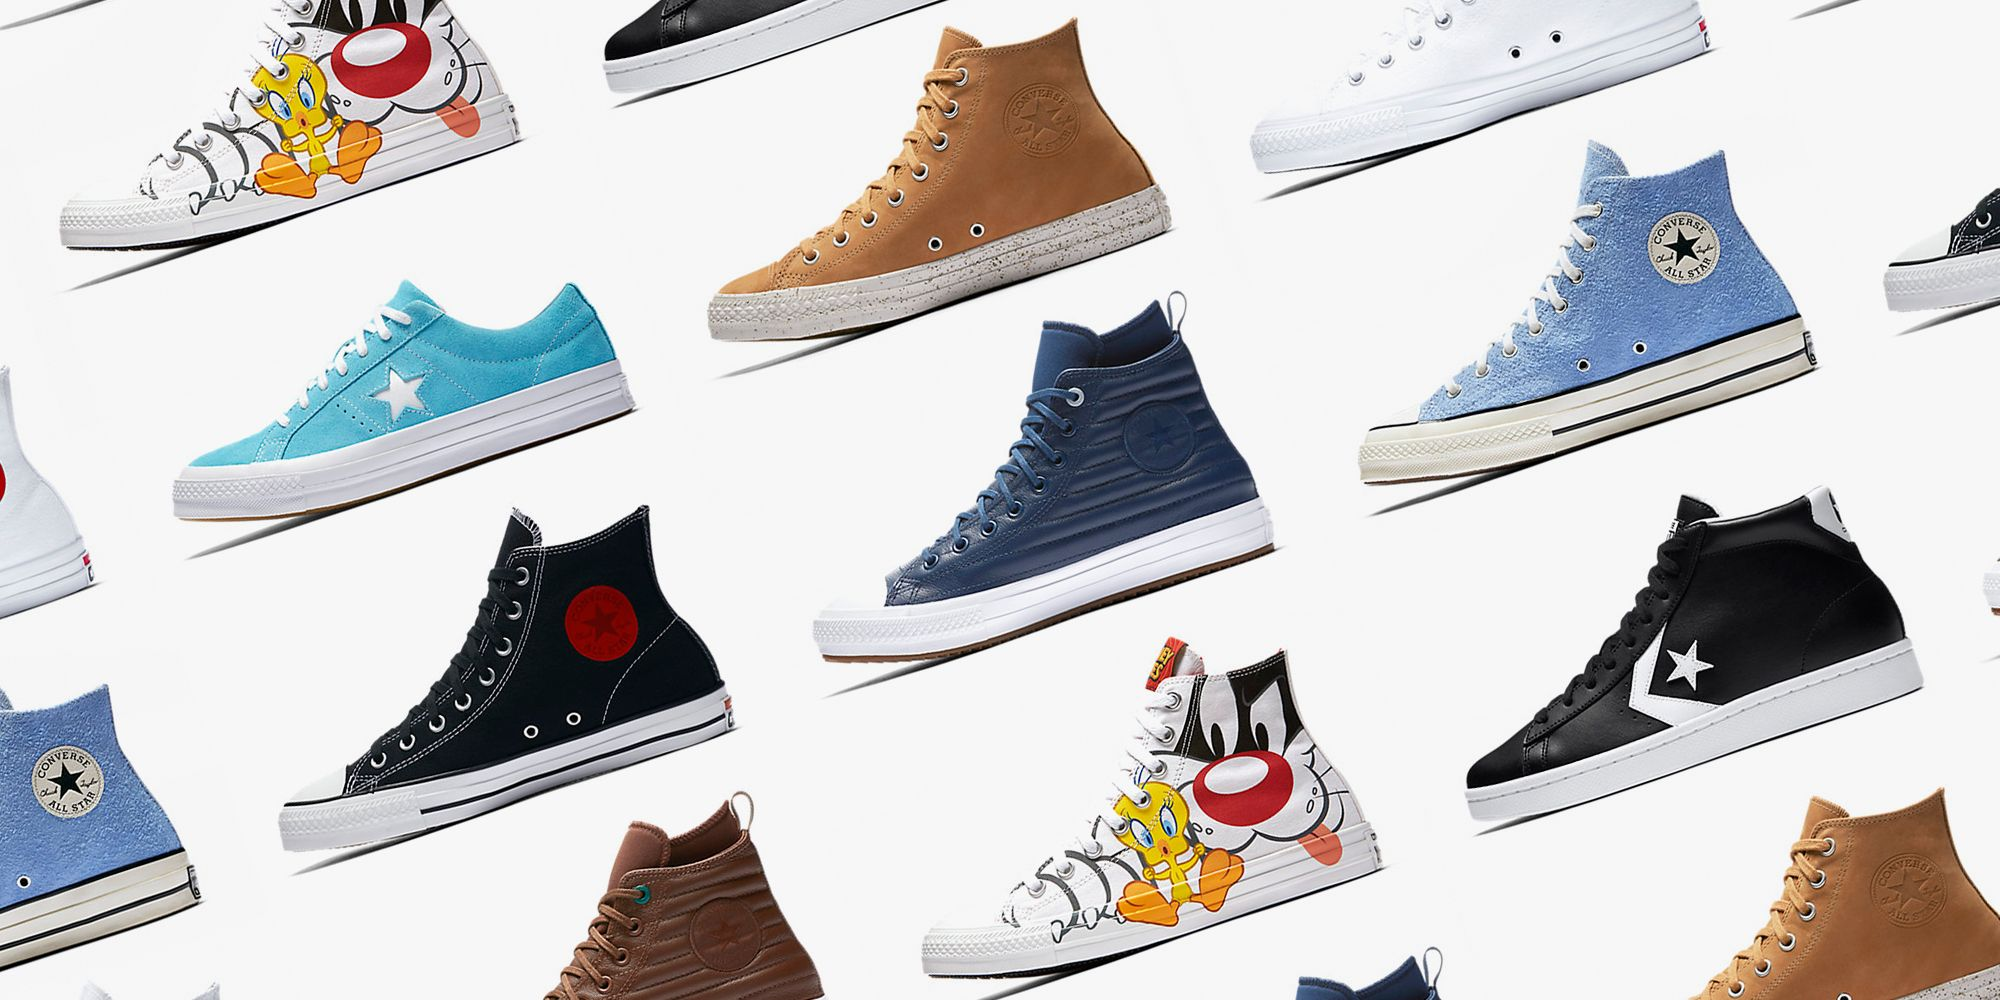 CONVERSE: Classic Colors & Durable Quality Make Converse One Of The Most Recognizable Shoes Around. Iconic Styles, Exclusive Collaborations, & Custom Designs.